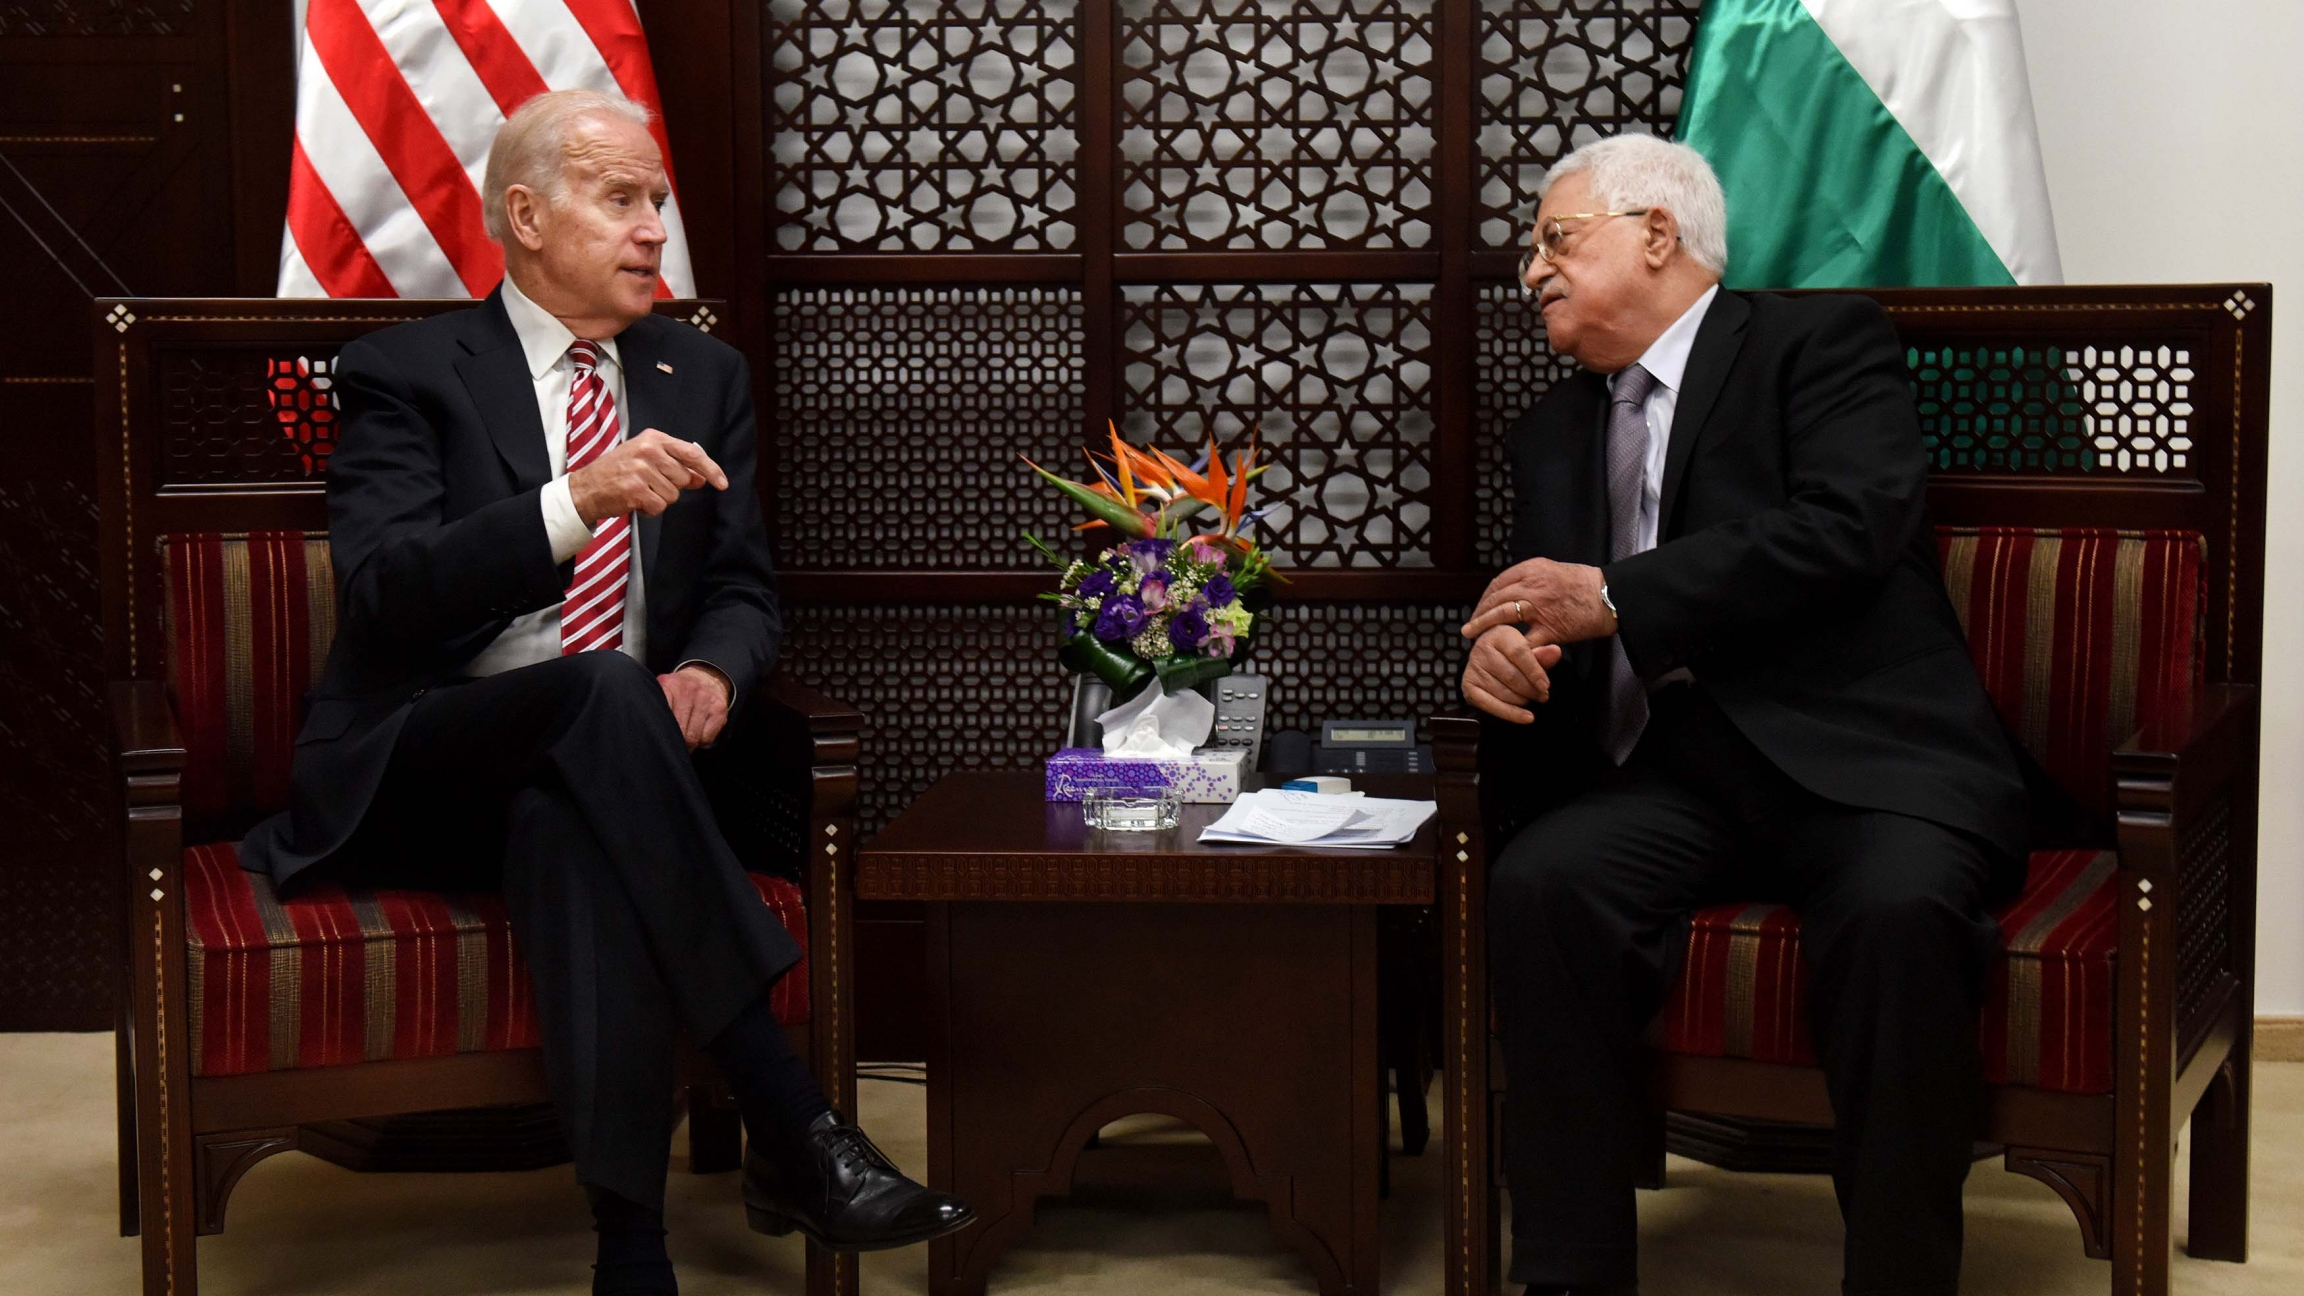 US President-elect Joe Biden, left, who was then US Vice President, and Palestinian President Mahmoud Abbas, meet at the presidential compound in Ramallah, West Bank, March 9, 2016.